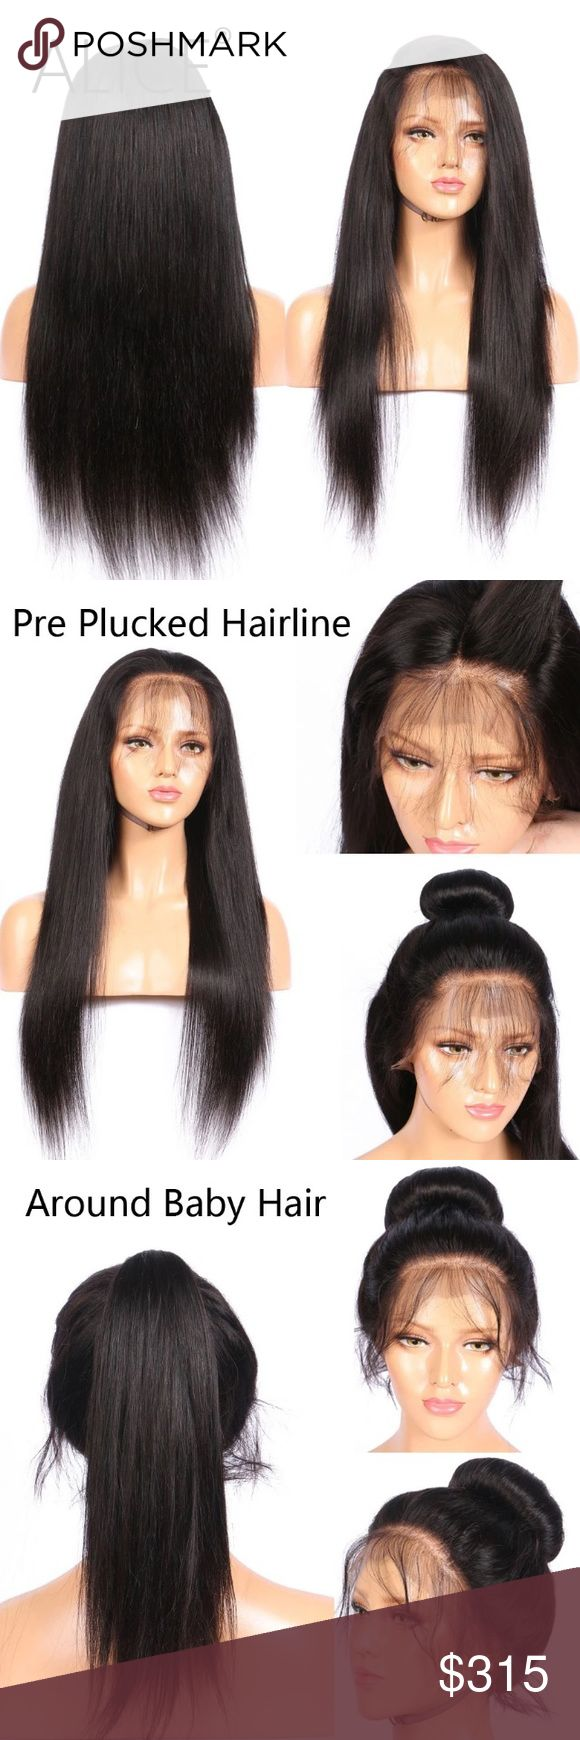 Alice full lace Brazilian Strait Hair Wig ALICE 150 Density Full Lace Human Hair Wigs With Baby Hair Silky Straight Brazilian Non Remy Hair Wigs No Tangle No Shedding Other